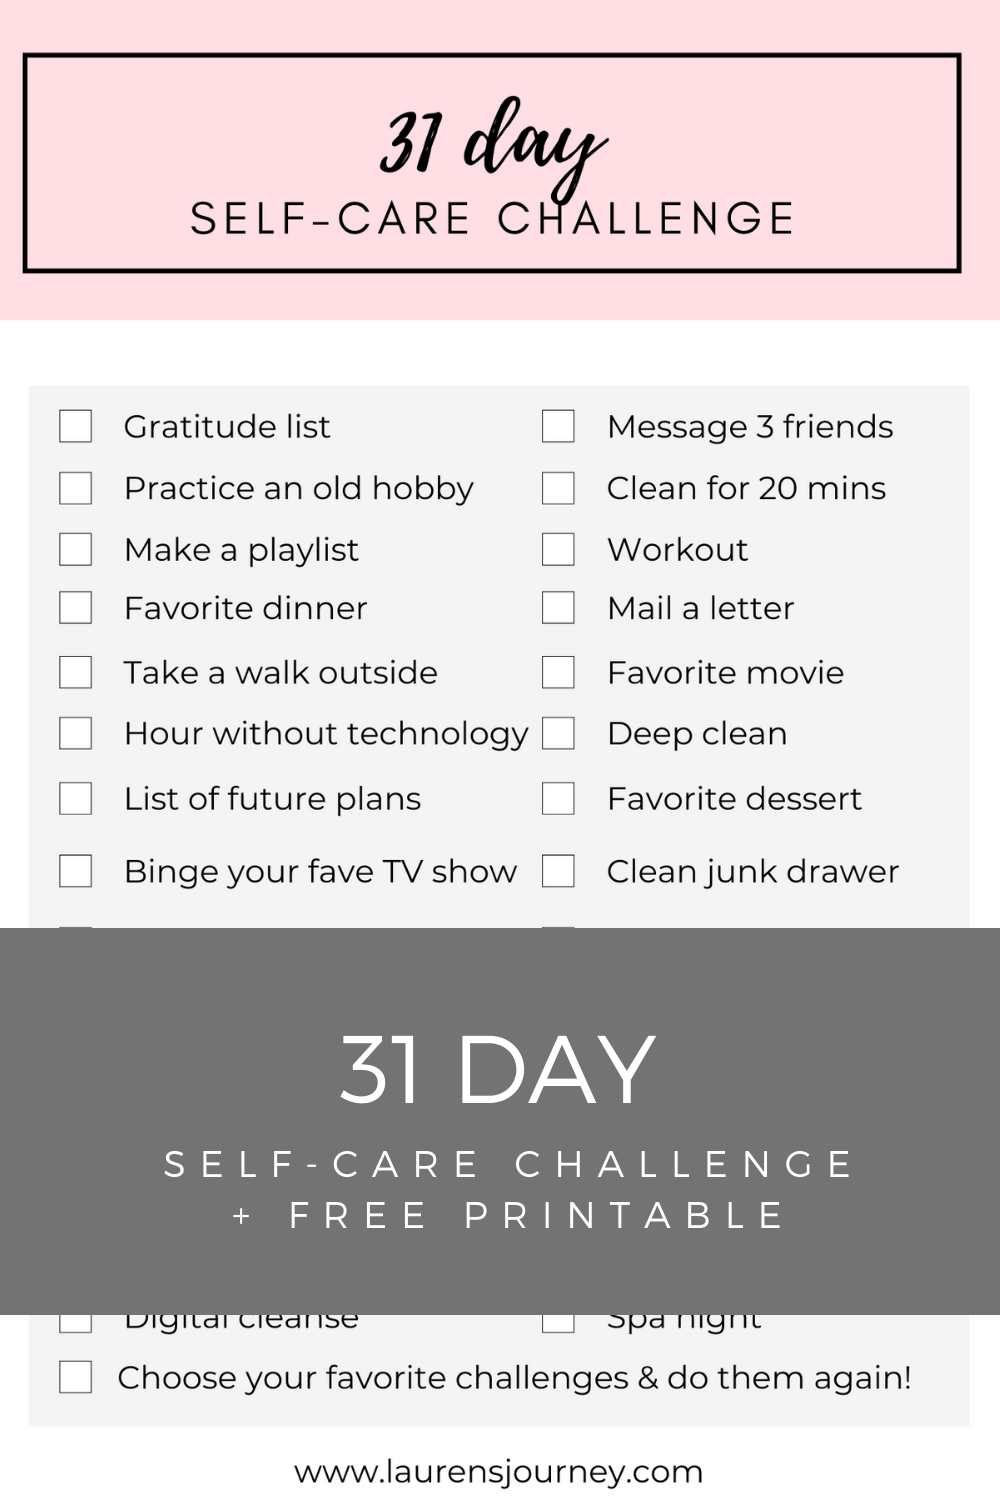 31 Day Self Care Challenge Free Printable Checklist May 2020 Lauren S Journey Self Care Self Care Activities Self Improvement Tips